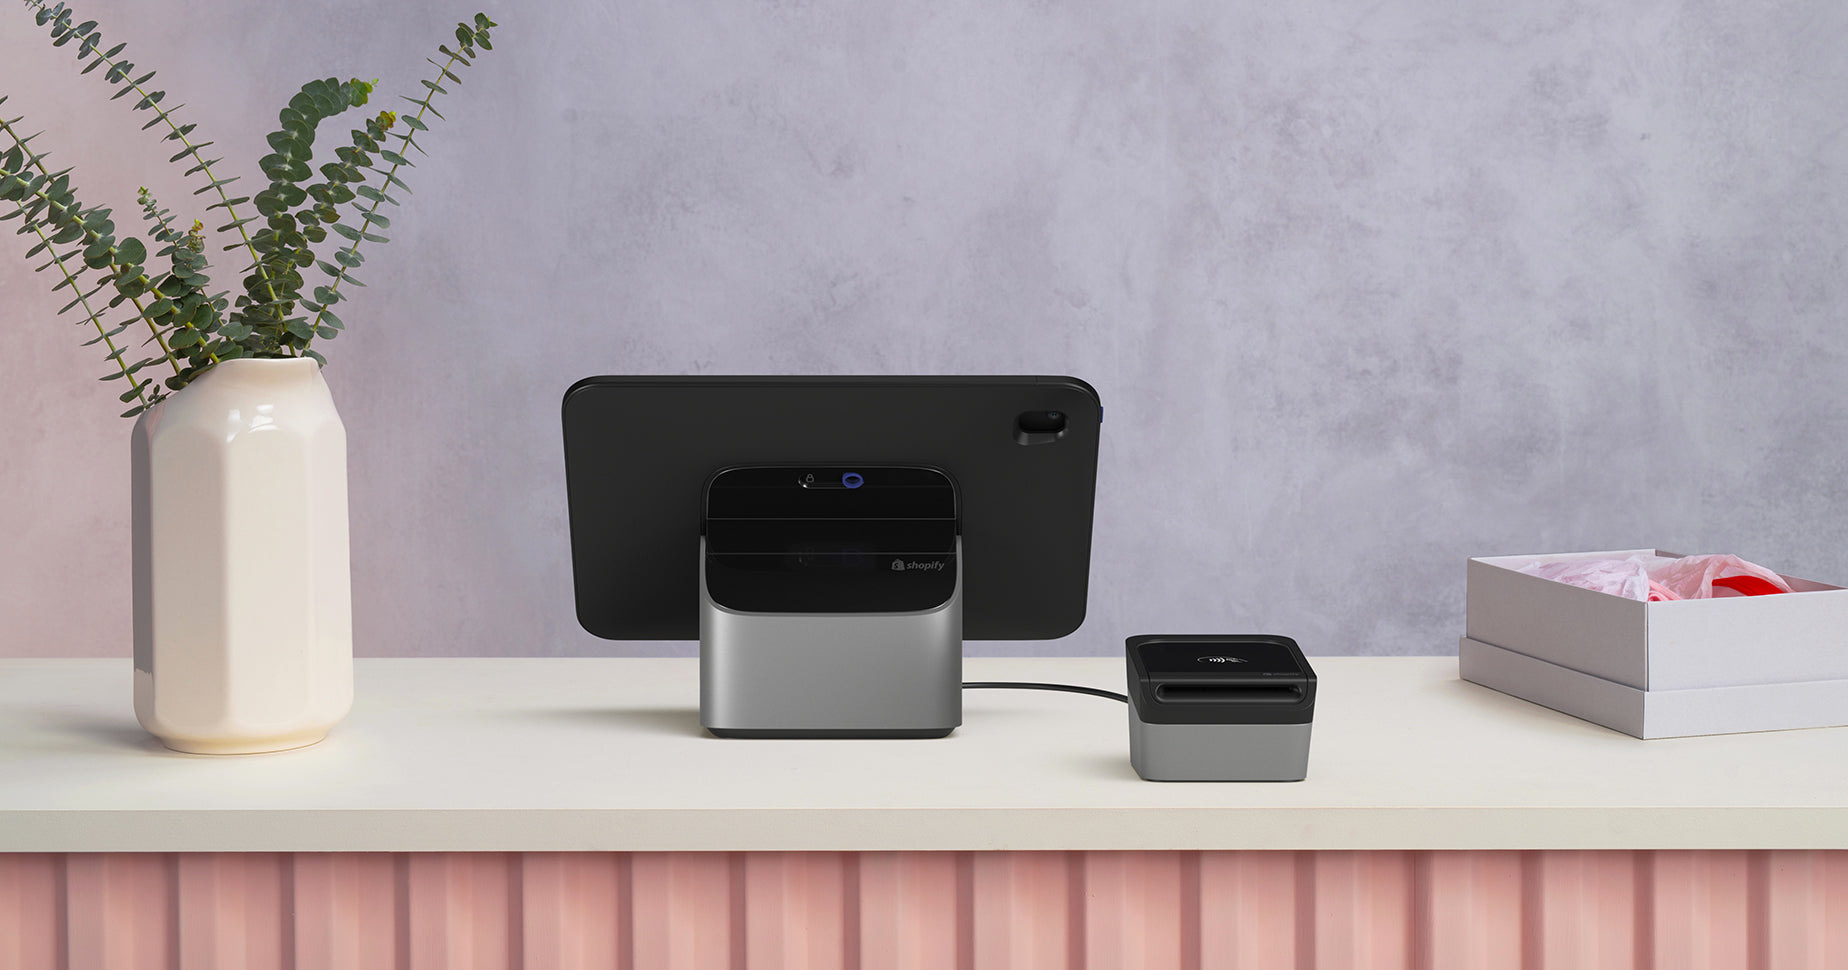 Shopify POS Hardware: Introducing Our Retail Kit